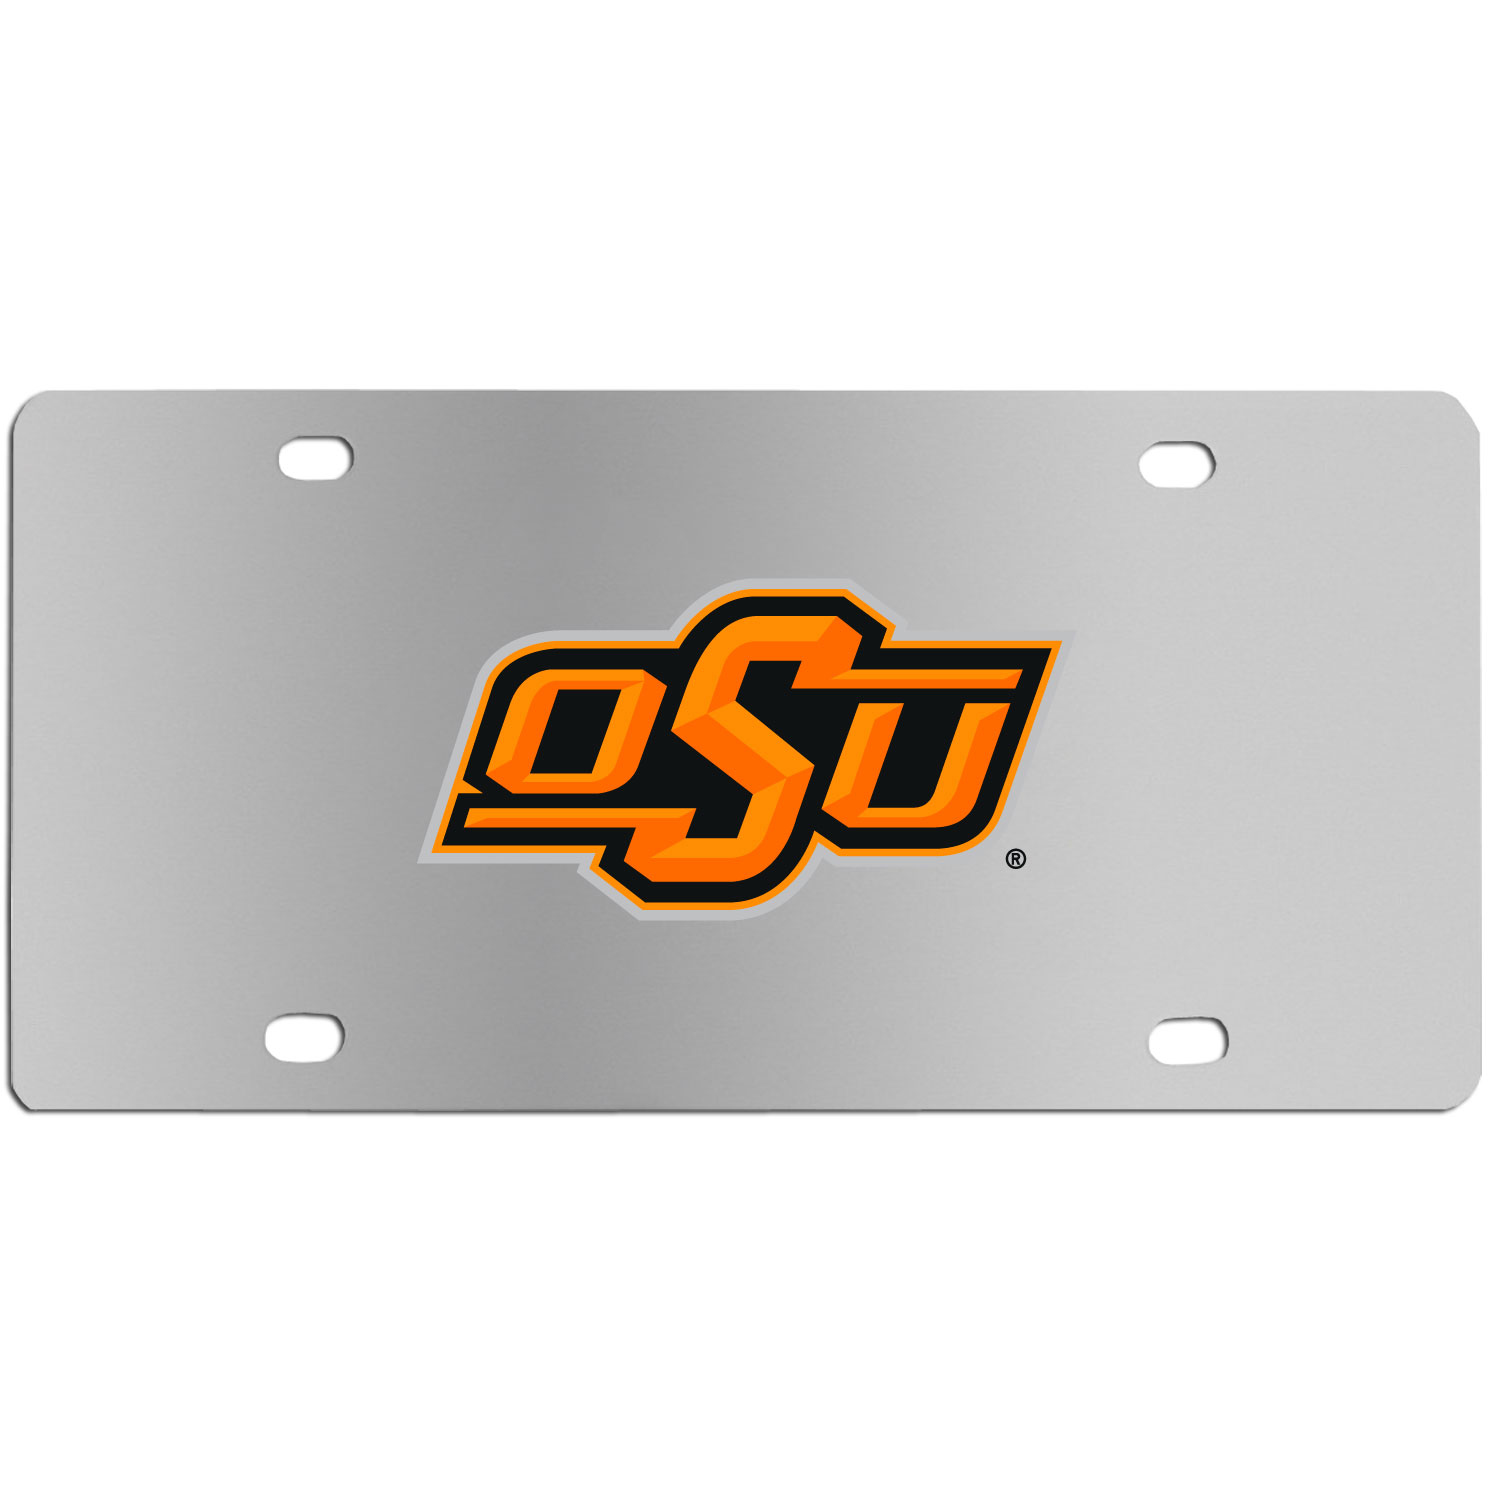 Oklahoma St. Cowboys Steel License Plate Wall Plaque - This high-quality stainless steel license plate features a detailed team logo on a the polished surface. The attractive plate is perfect for wall mounting in your home or office to become the perfect die-hard Oklahoma St. Cowboys fan decor.